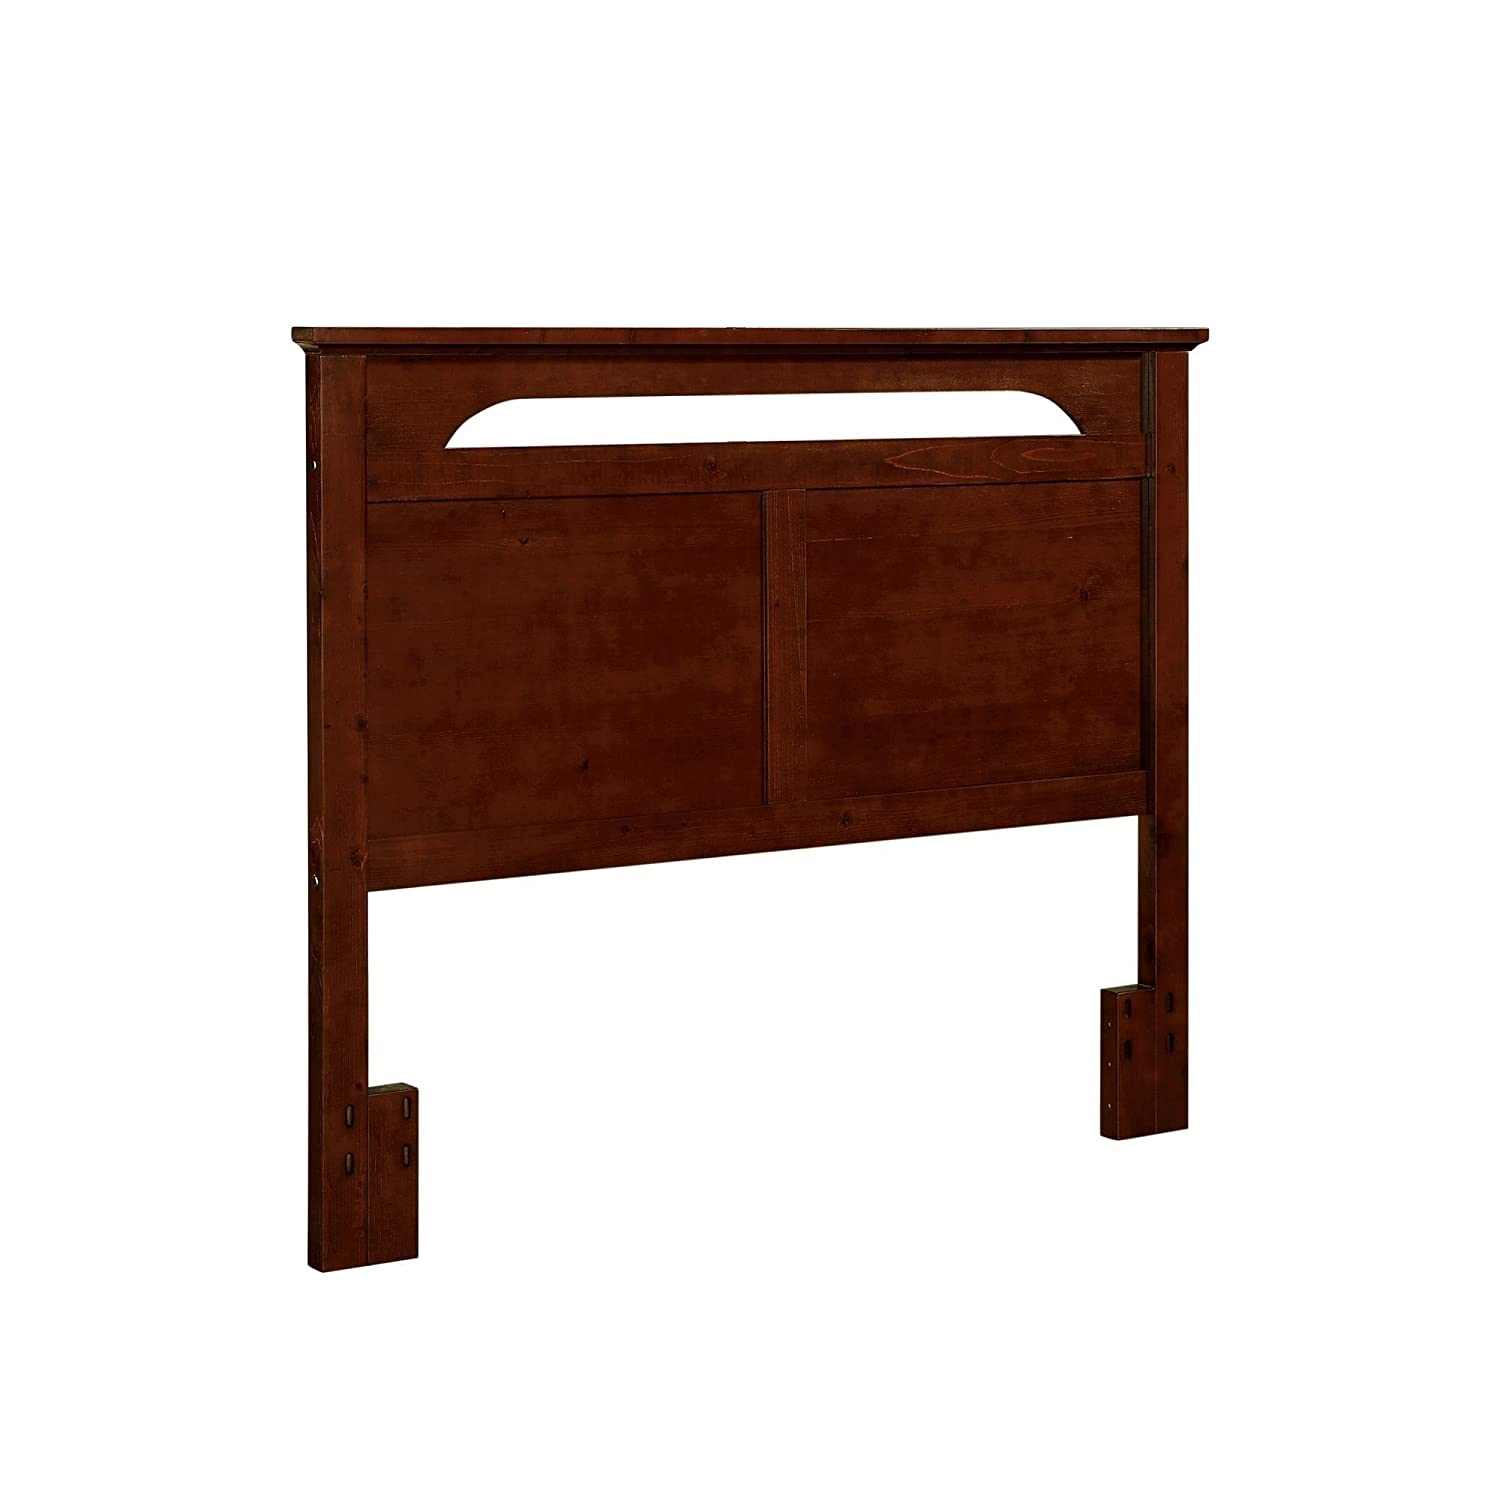 Beautiful Dorel Living Queen Or Full Sized Headboard In Solid Wood In Cherry Finish Nice Look